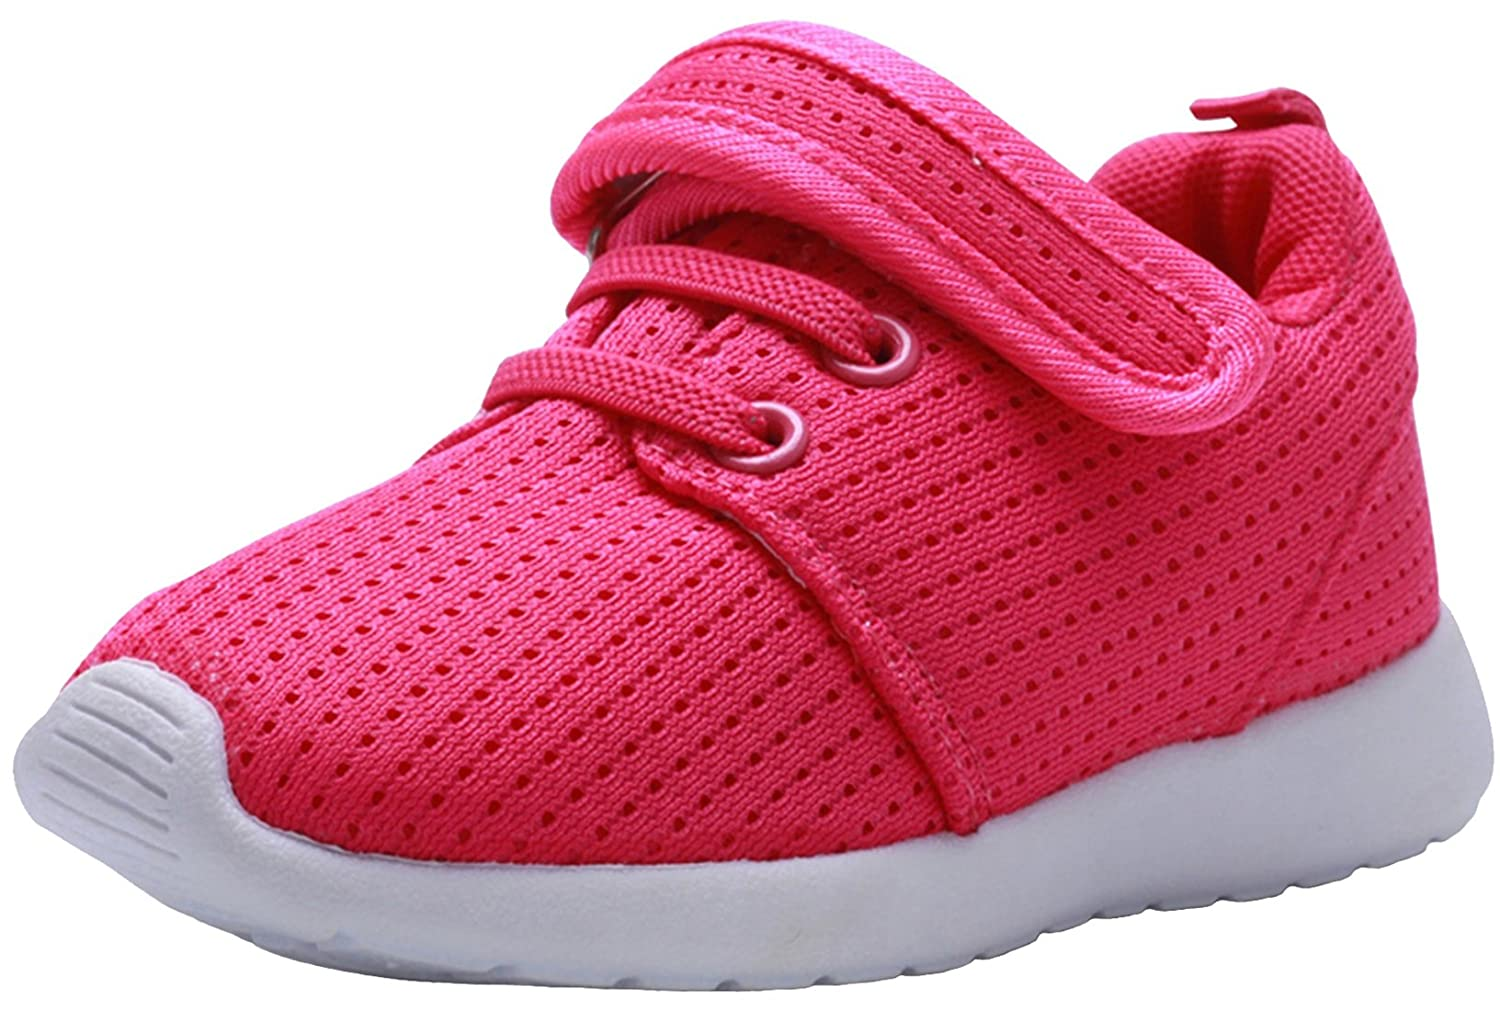 PPXID Boy's Girl's Light Weight Fashion Sneakers Casual Sport Shoes Z0069